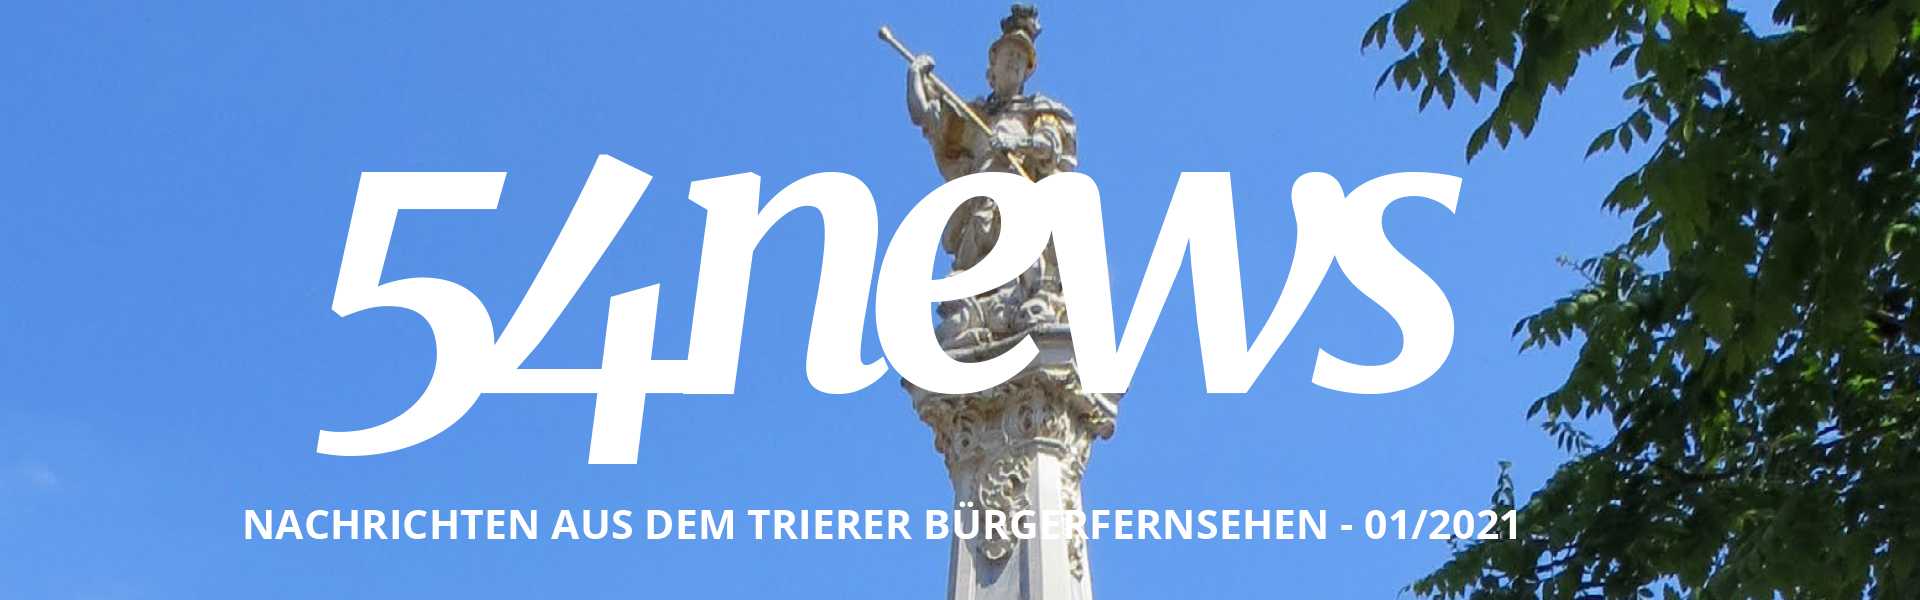 Read more about the article Neue Ausgabe 54news